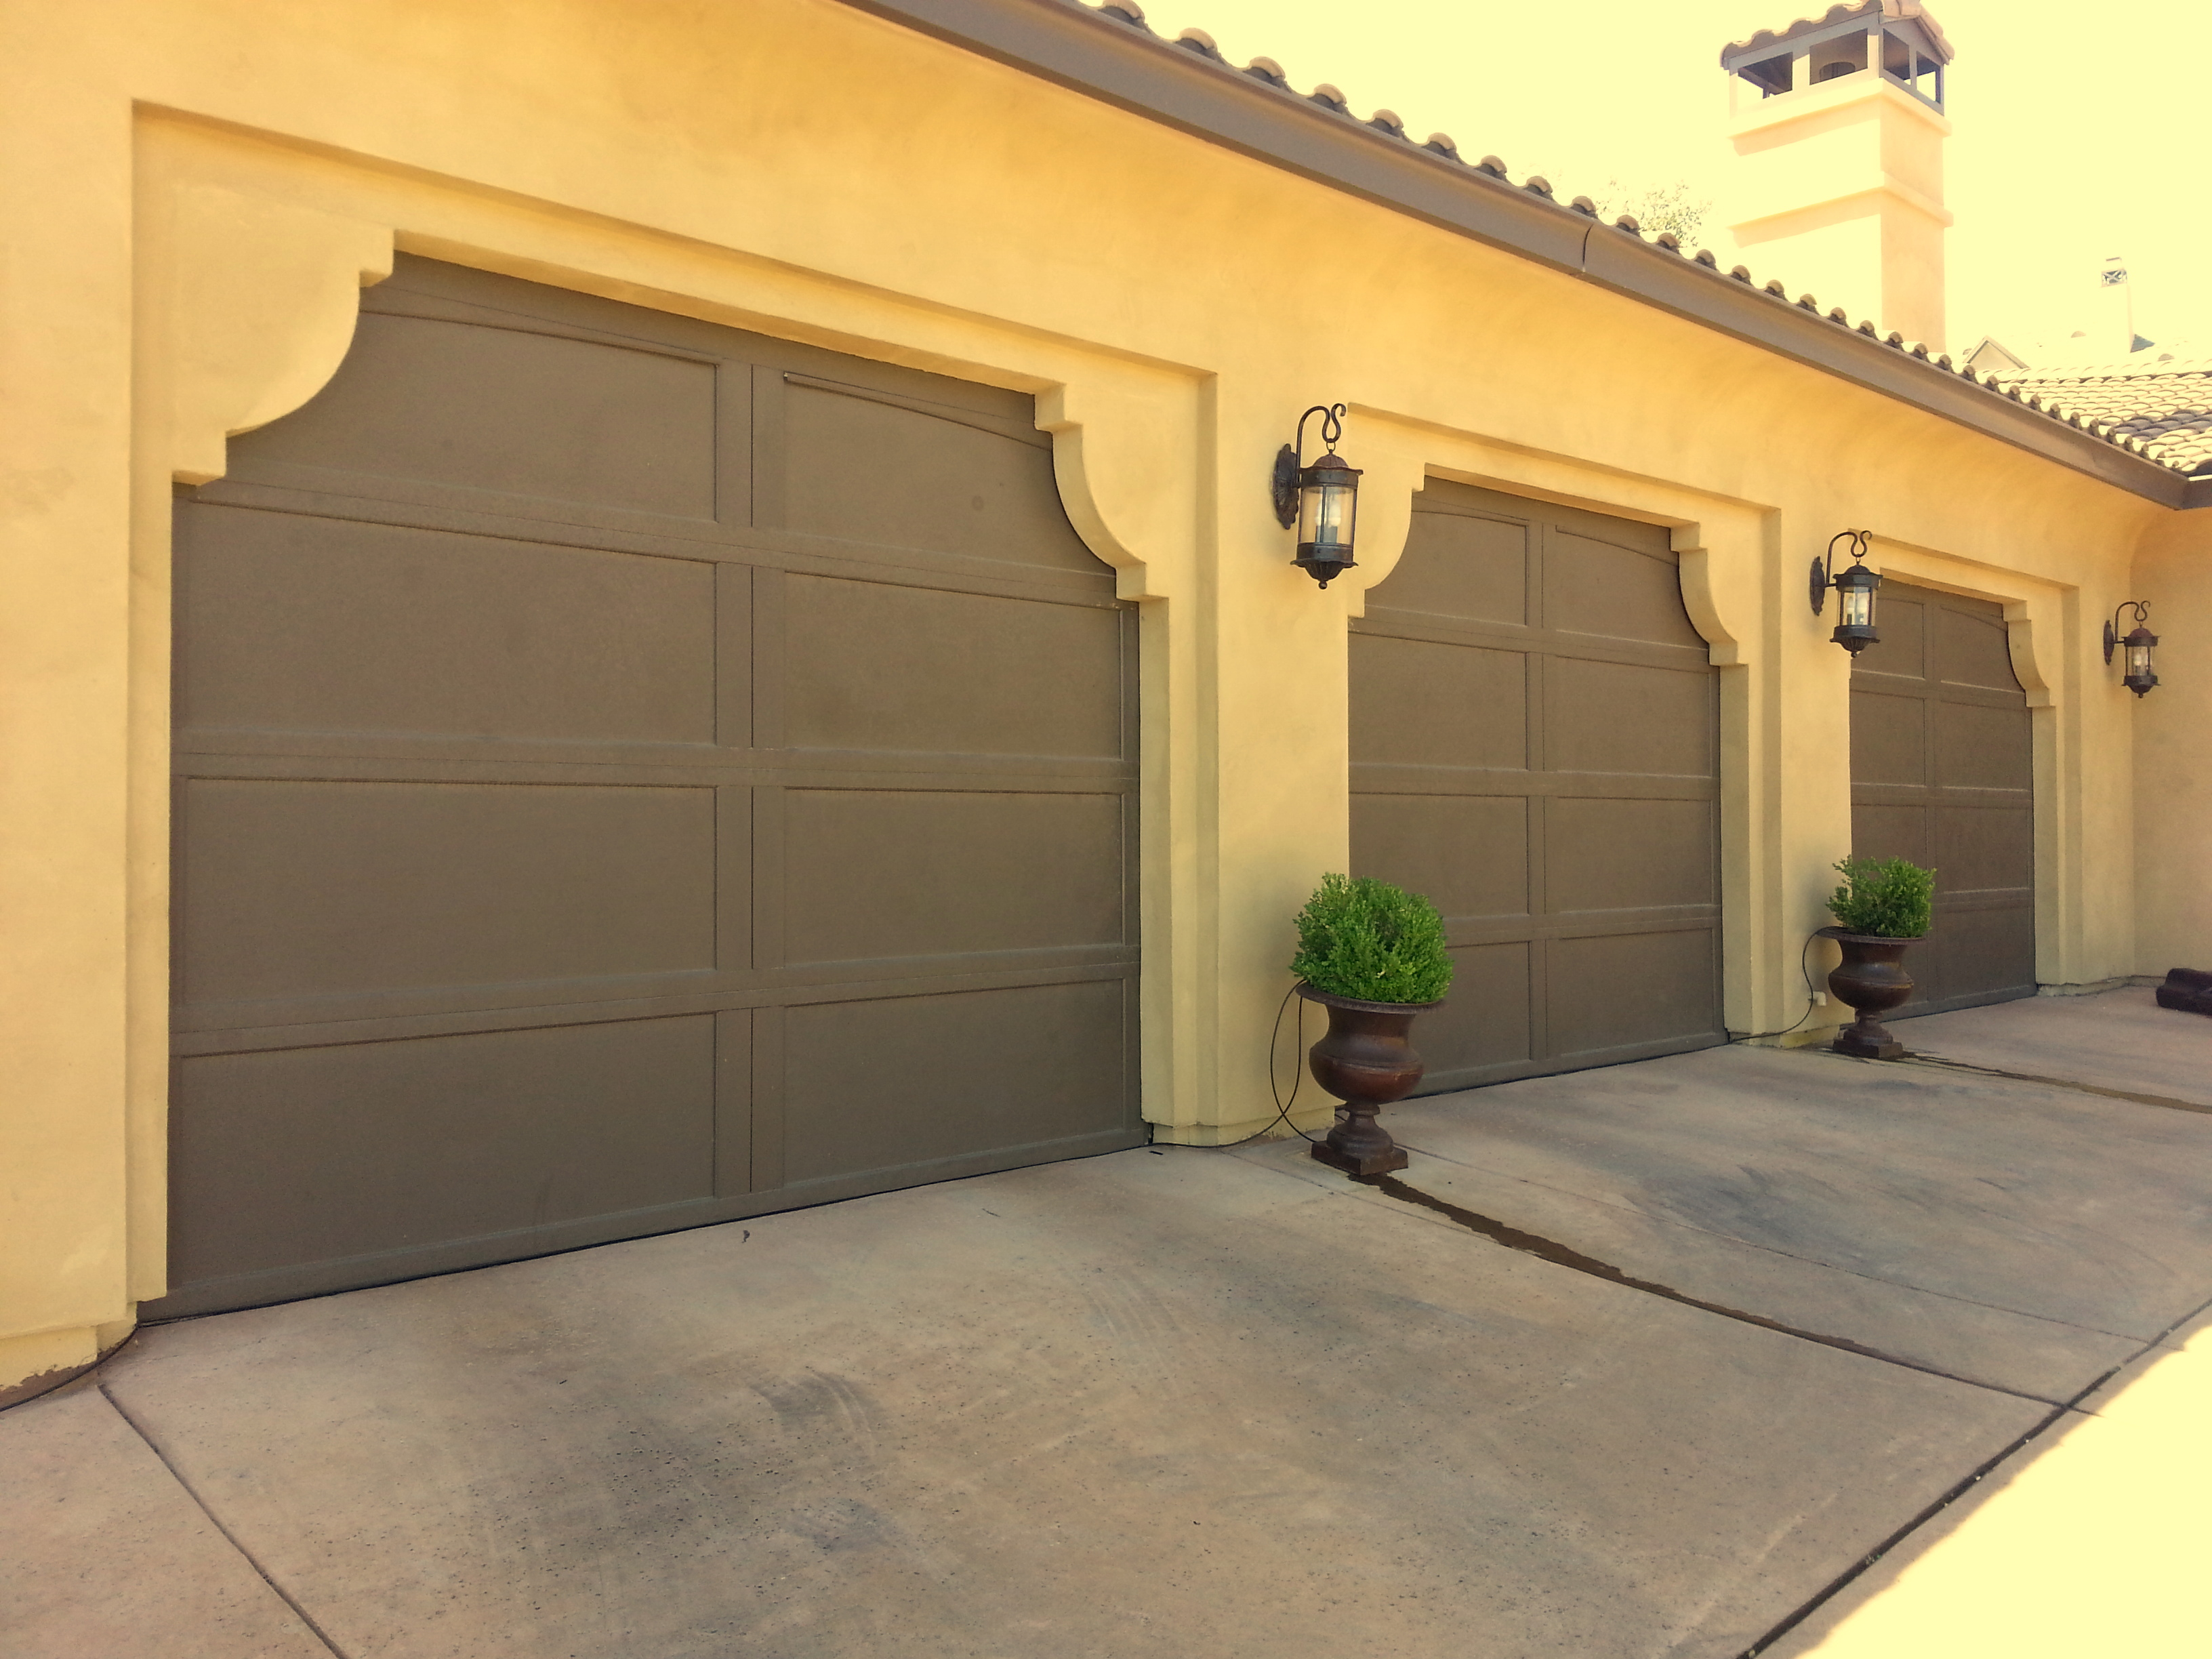 Garage Door Trends Archives Sugar Land Garage Door Repairsugar